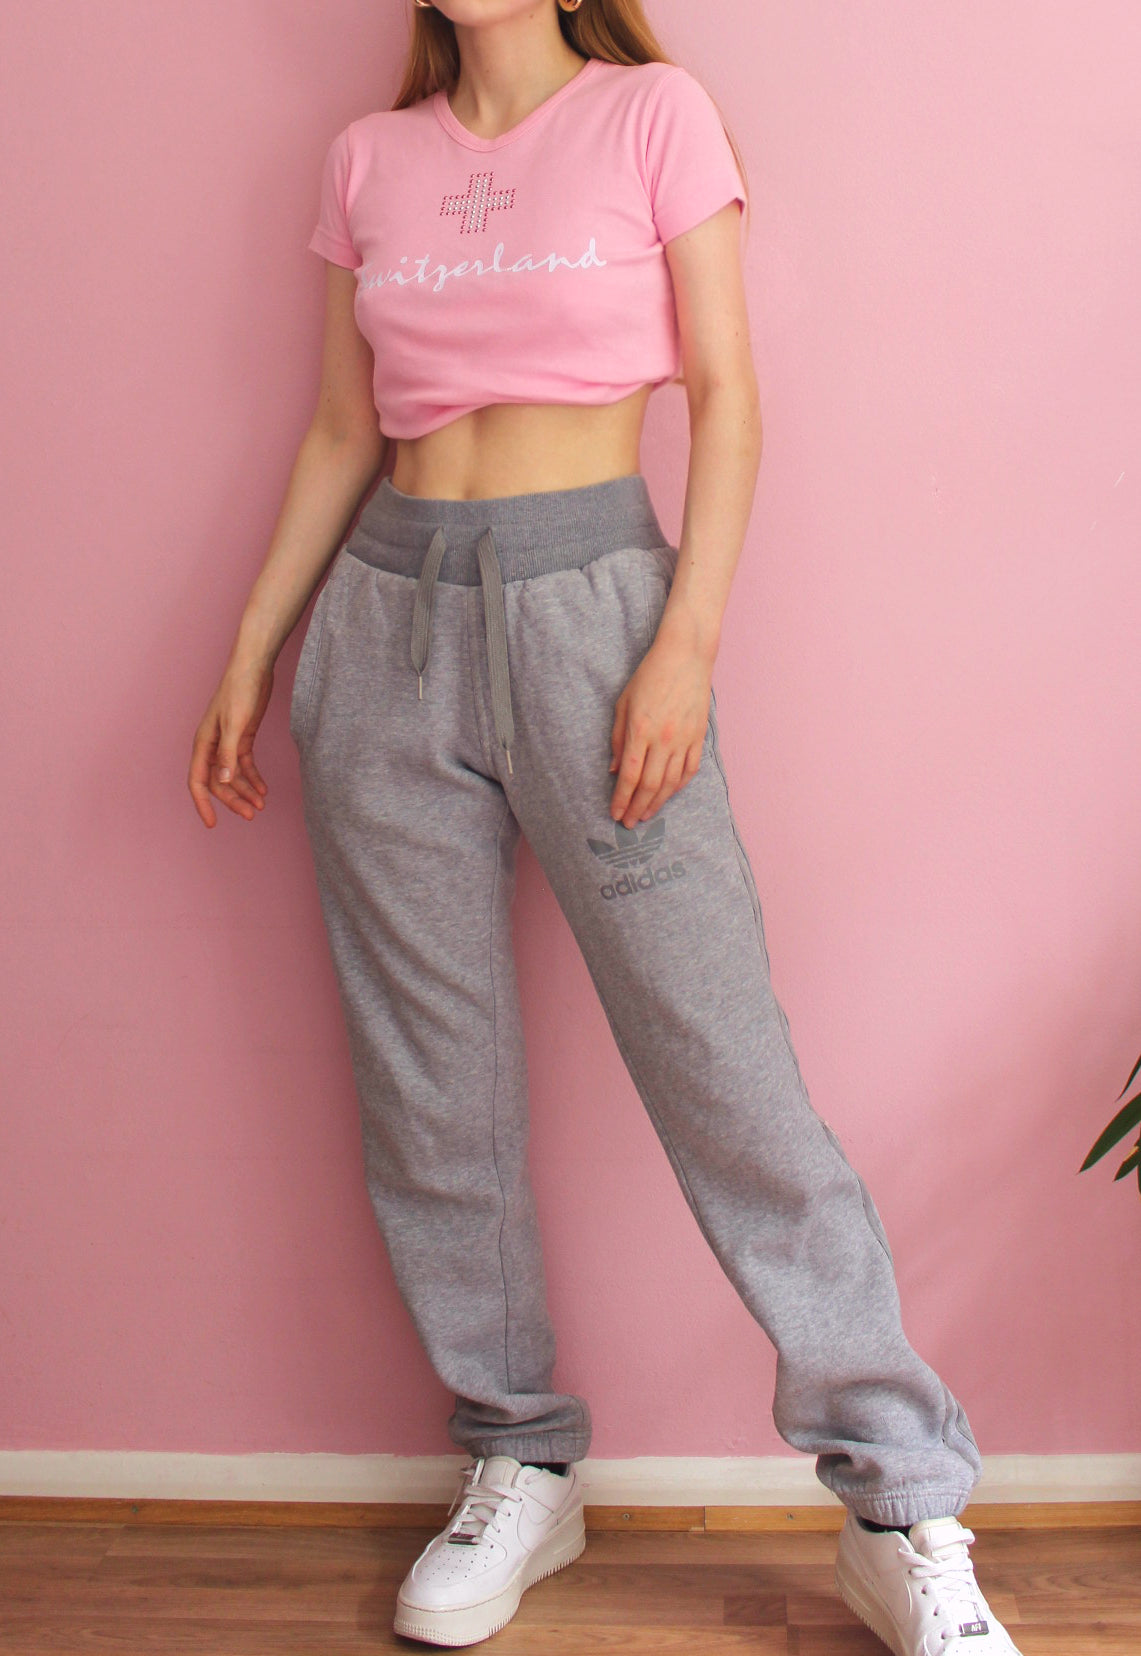 Y2K Grey Adidas Sweatpants